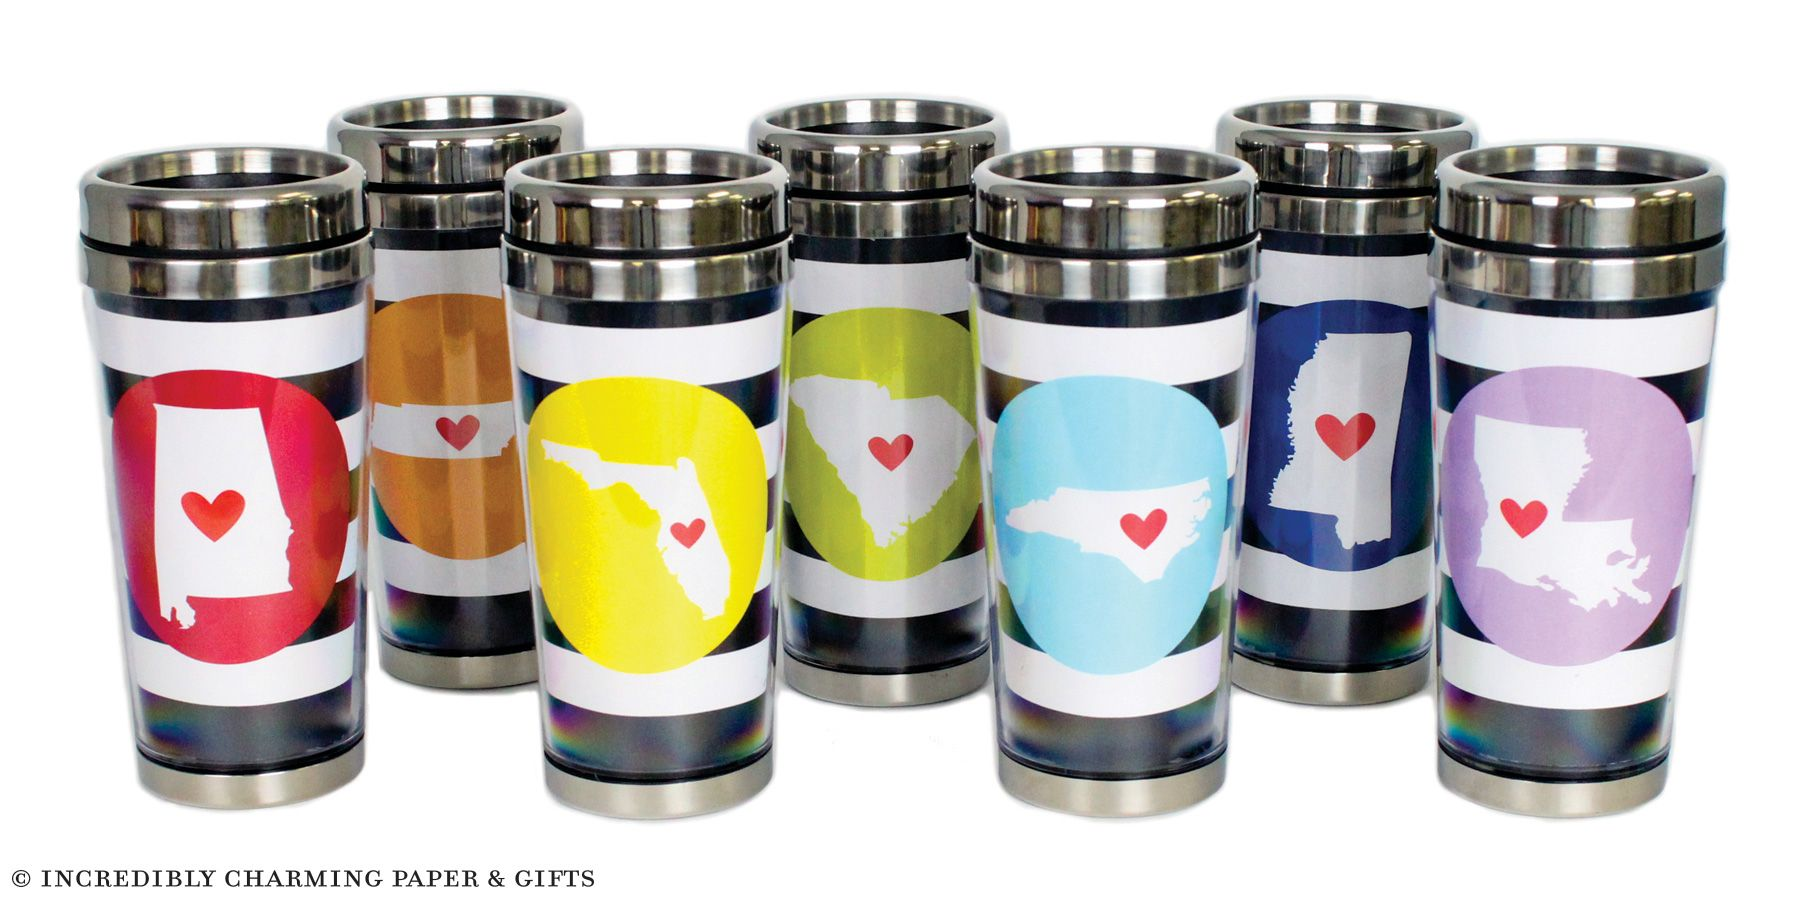 Cabana State Stainless Steel Travel Tumblers. www.incrediblycharming.com